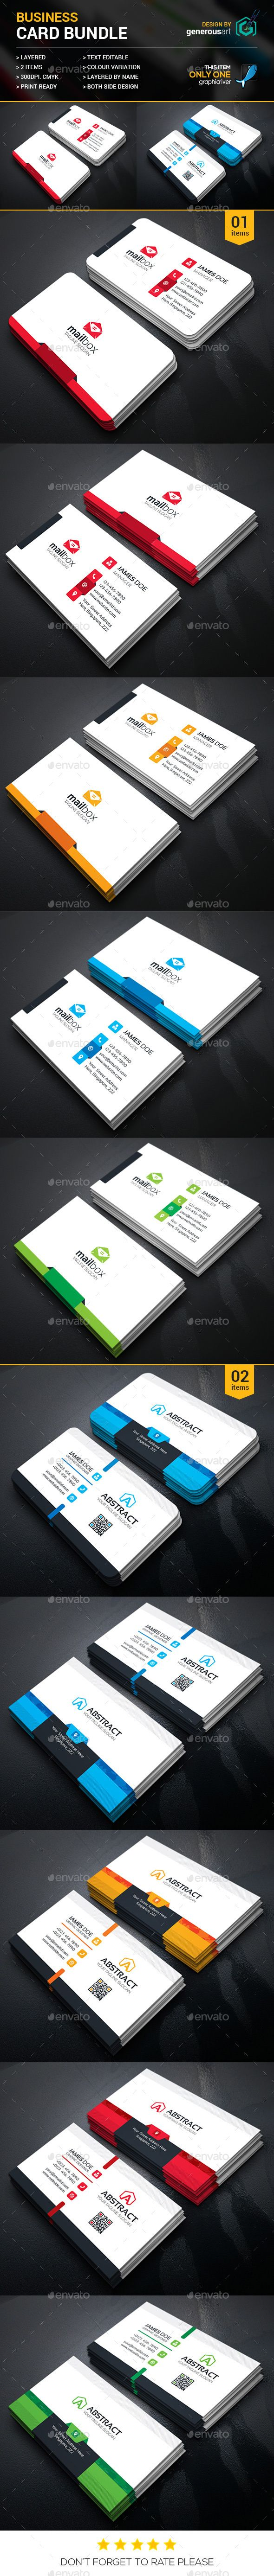 34 best business cards images on pinterest business card design business card bundle 2 in by generousart i included those cards as a items file information print dimensionwith bleed trim mark illustrator eps reheart Choice Image